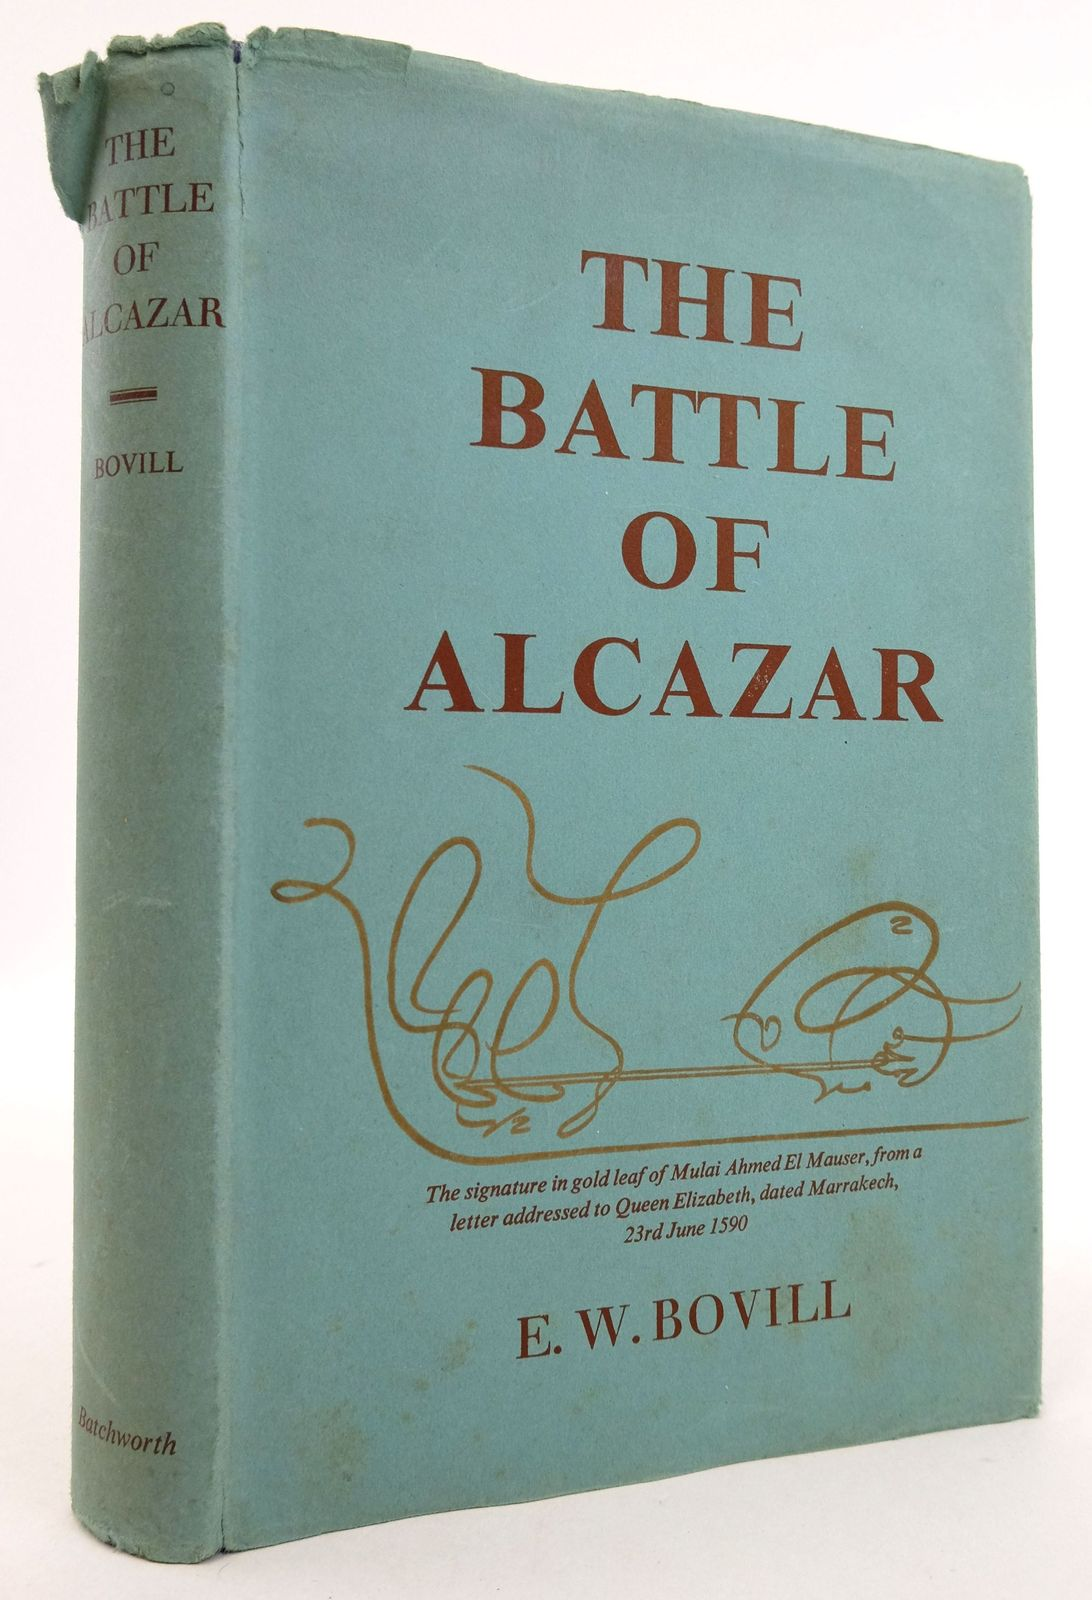 Photo of THE BATTLE OF ALCAZAR written by Bovill, E.W. published by The Batchworth Press (STOCK CODE: 1819715)  for sale by Stella & Rose's Books